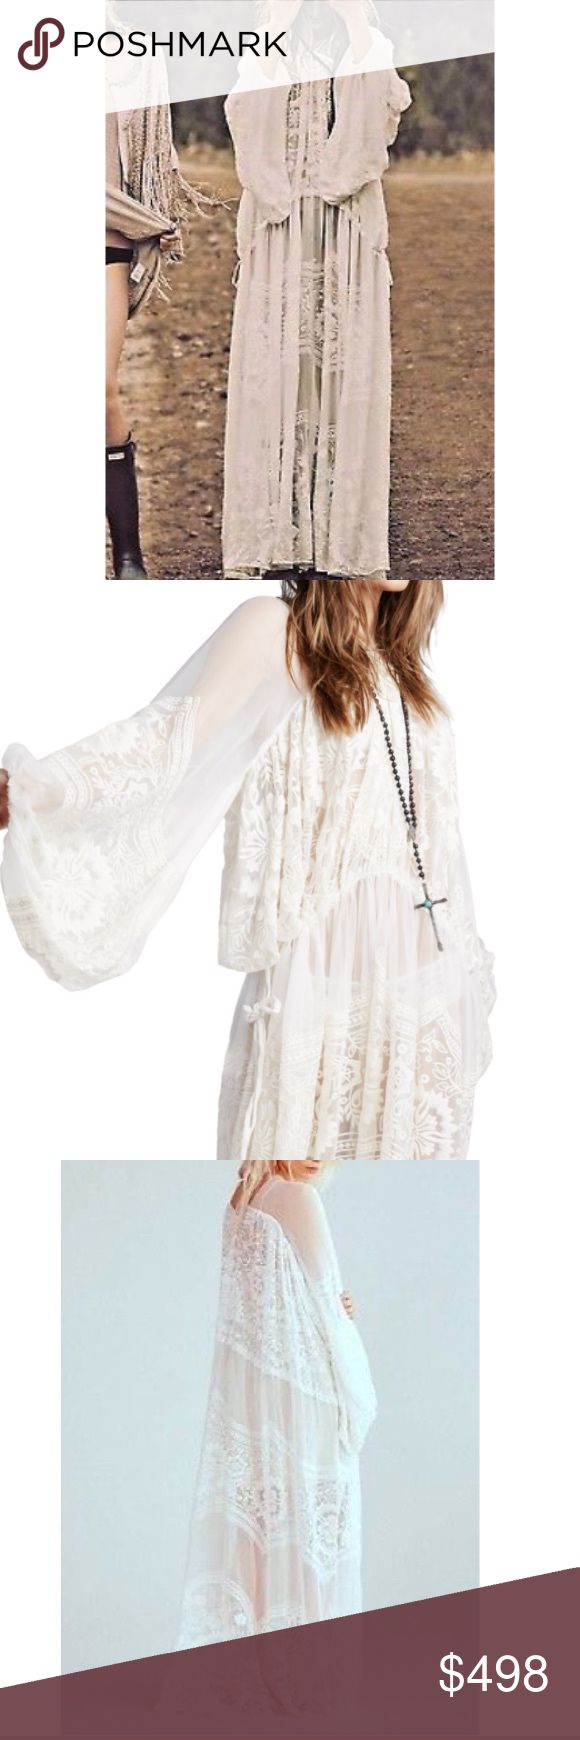 "Free People BohemianWind Embroidered wedding dress Ethereal and gorgeous maxi dress featuring allover tonal embroidery detailing with statement wide sleeves and a V-neckline. Adjustable ties at the waist for a more customizable fit.  100% Silk Hand Wash Cold Import Bust: 44.0"" = 111.76 cm Length: 59.5"" = 151.13 cm Sleeve Length: 29.5"" = 74.93 cm.  New never worn. Sold out this years style. Sold out everywhere, i saw that its selling on eBay for $748- this is a score!!! Free People Dresses…"